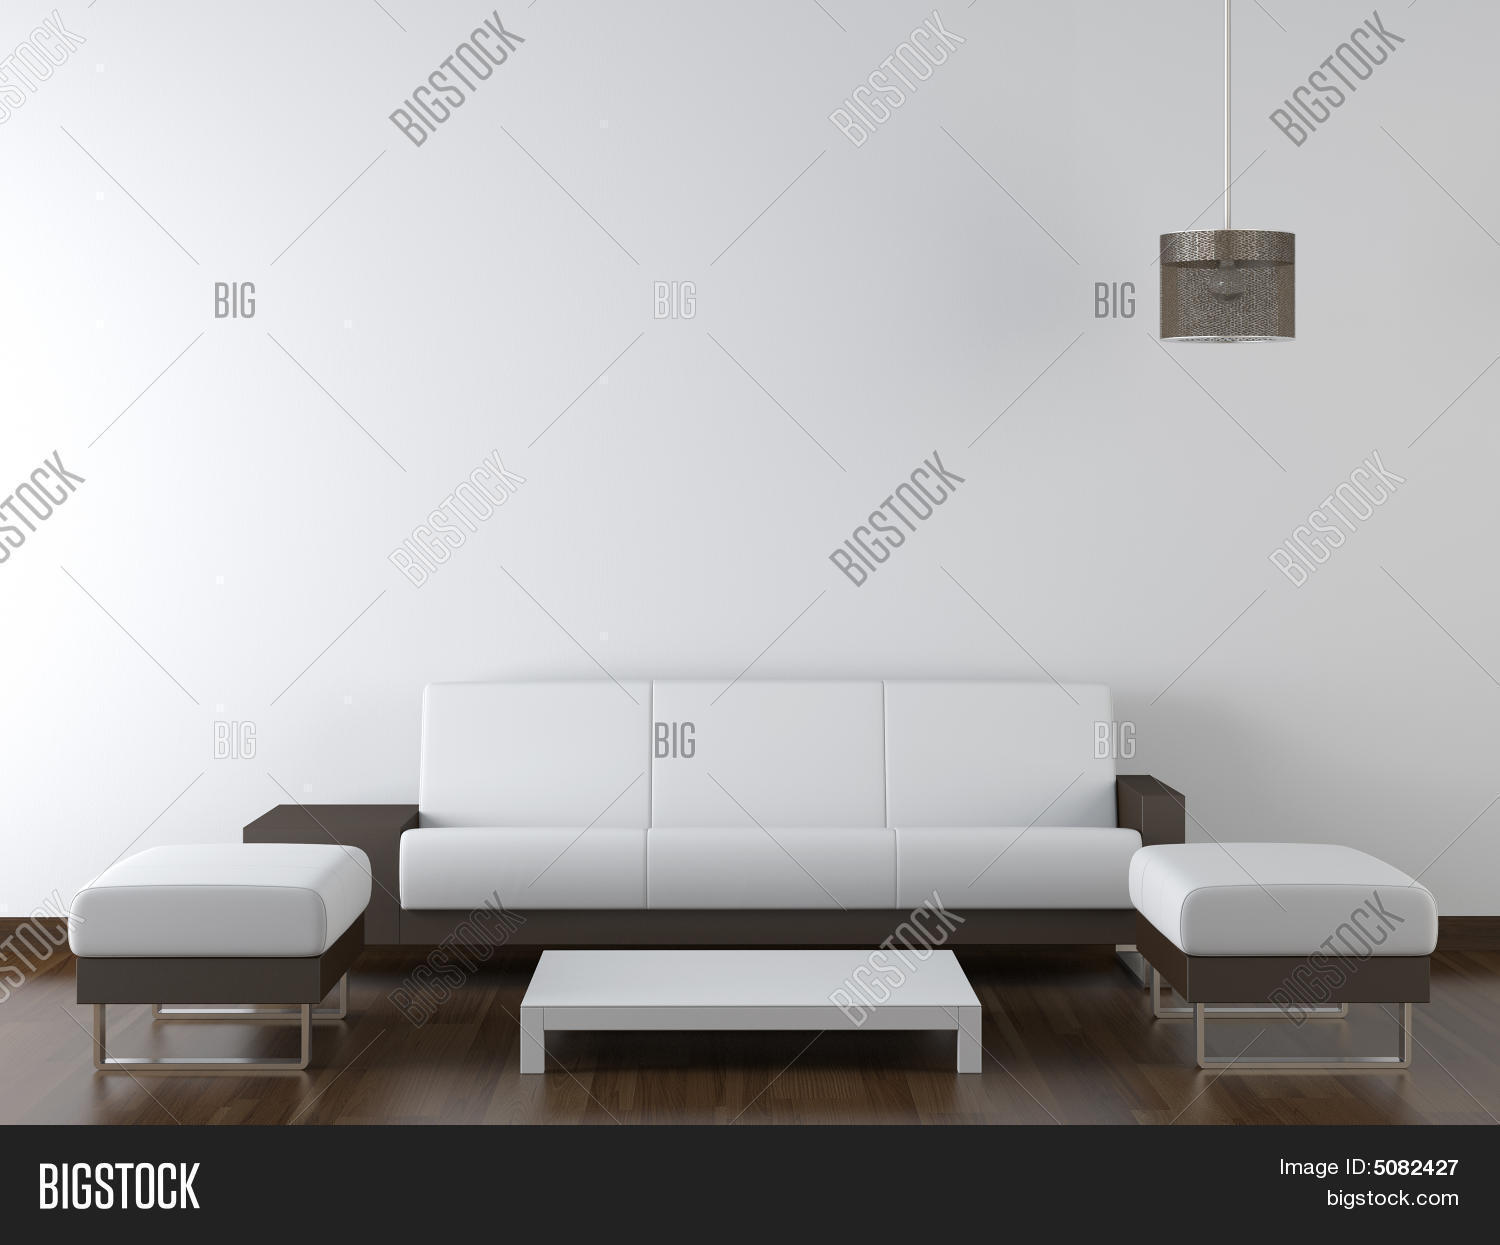 background,black,chair,copy,couch,design,furniture,furniture design,home,house,indoors,interior,interior design,interior wall,lamp,living,living room,living room interior,living room wall,minimal,modern interior,modern living room,nobody,parquet,room,simplicity,space,style,stylish,table,wall,white,white room,white wall